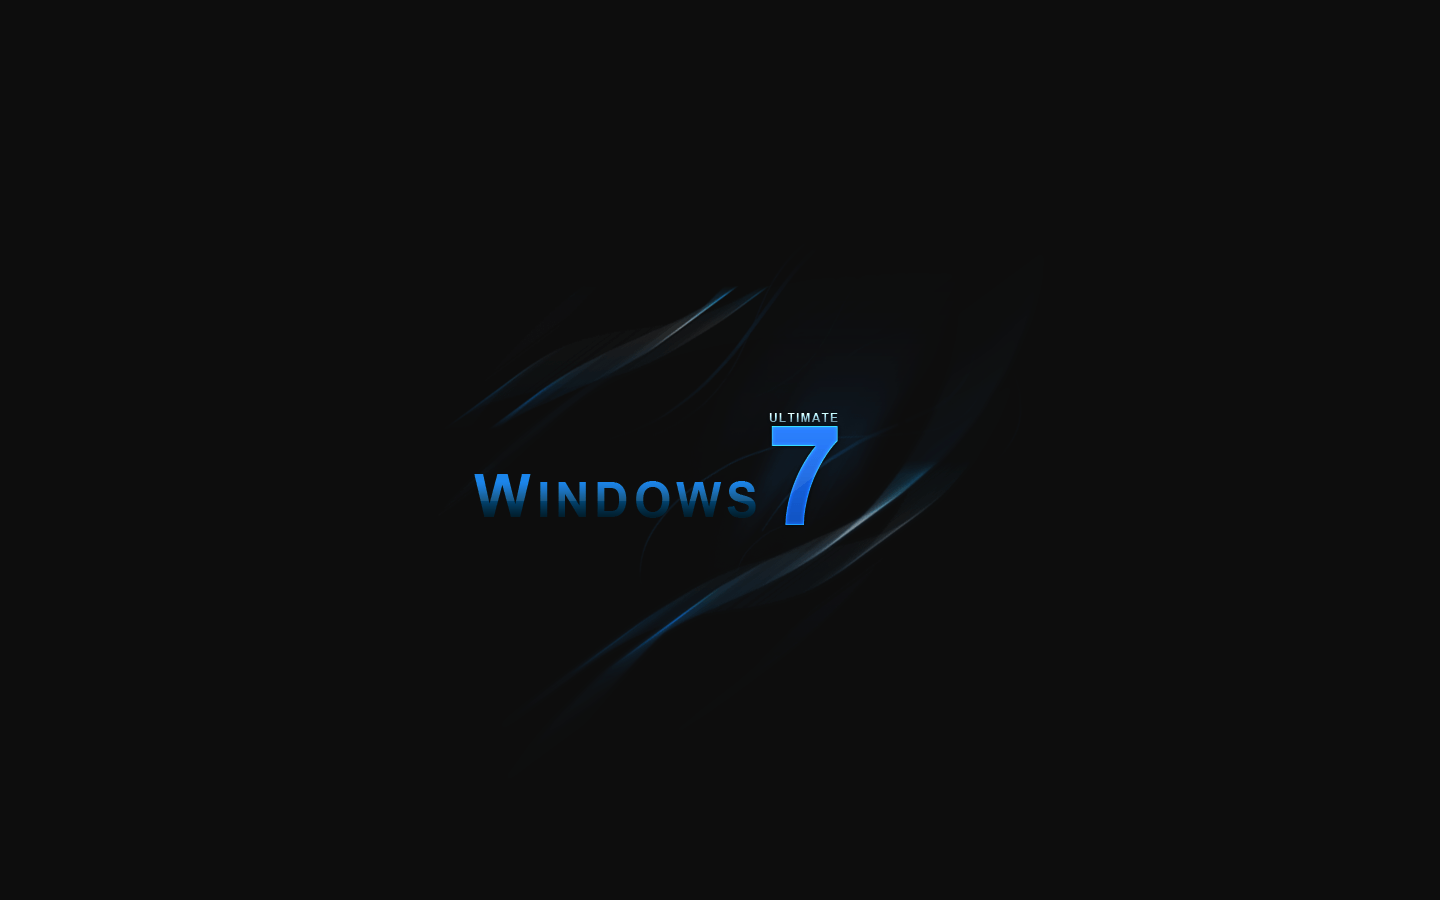 Windows 7 Black Wallpapers - Wallpaper Cave